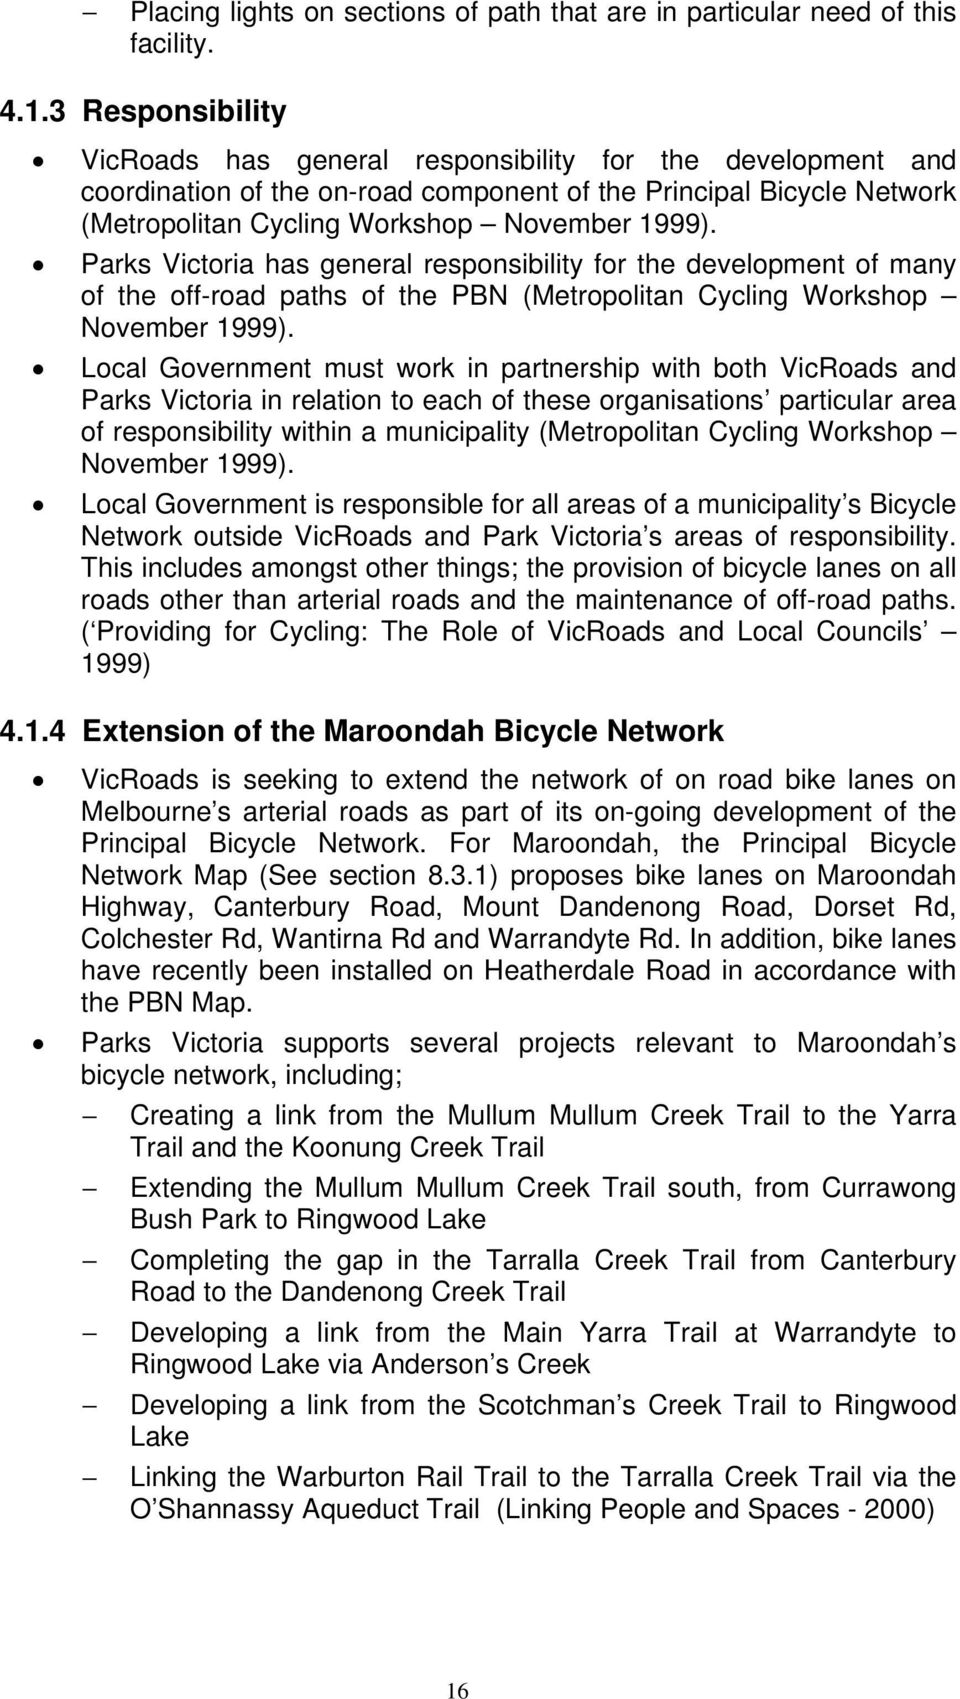 Parks Victoria has general responsibility for the development of many of the off-road paths of the PBN (Metropolitan Cycling Workshop November 1999).